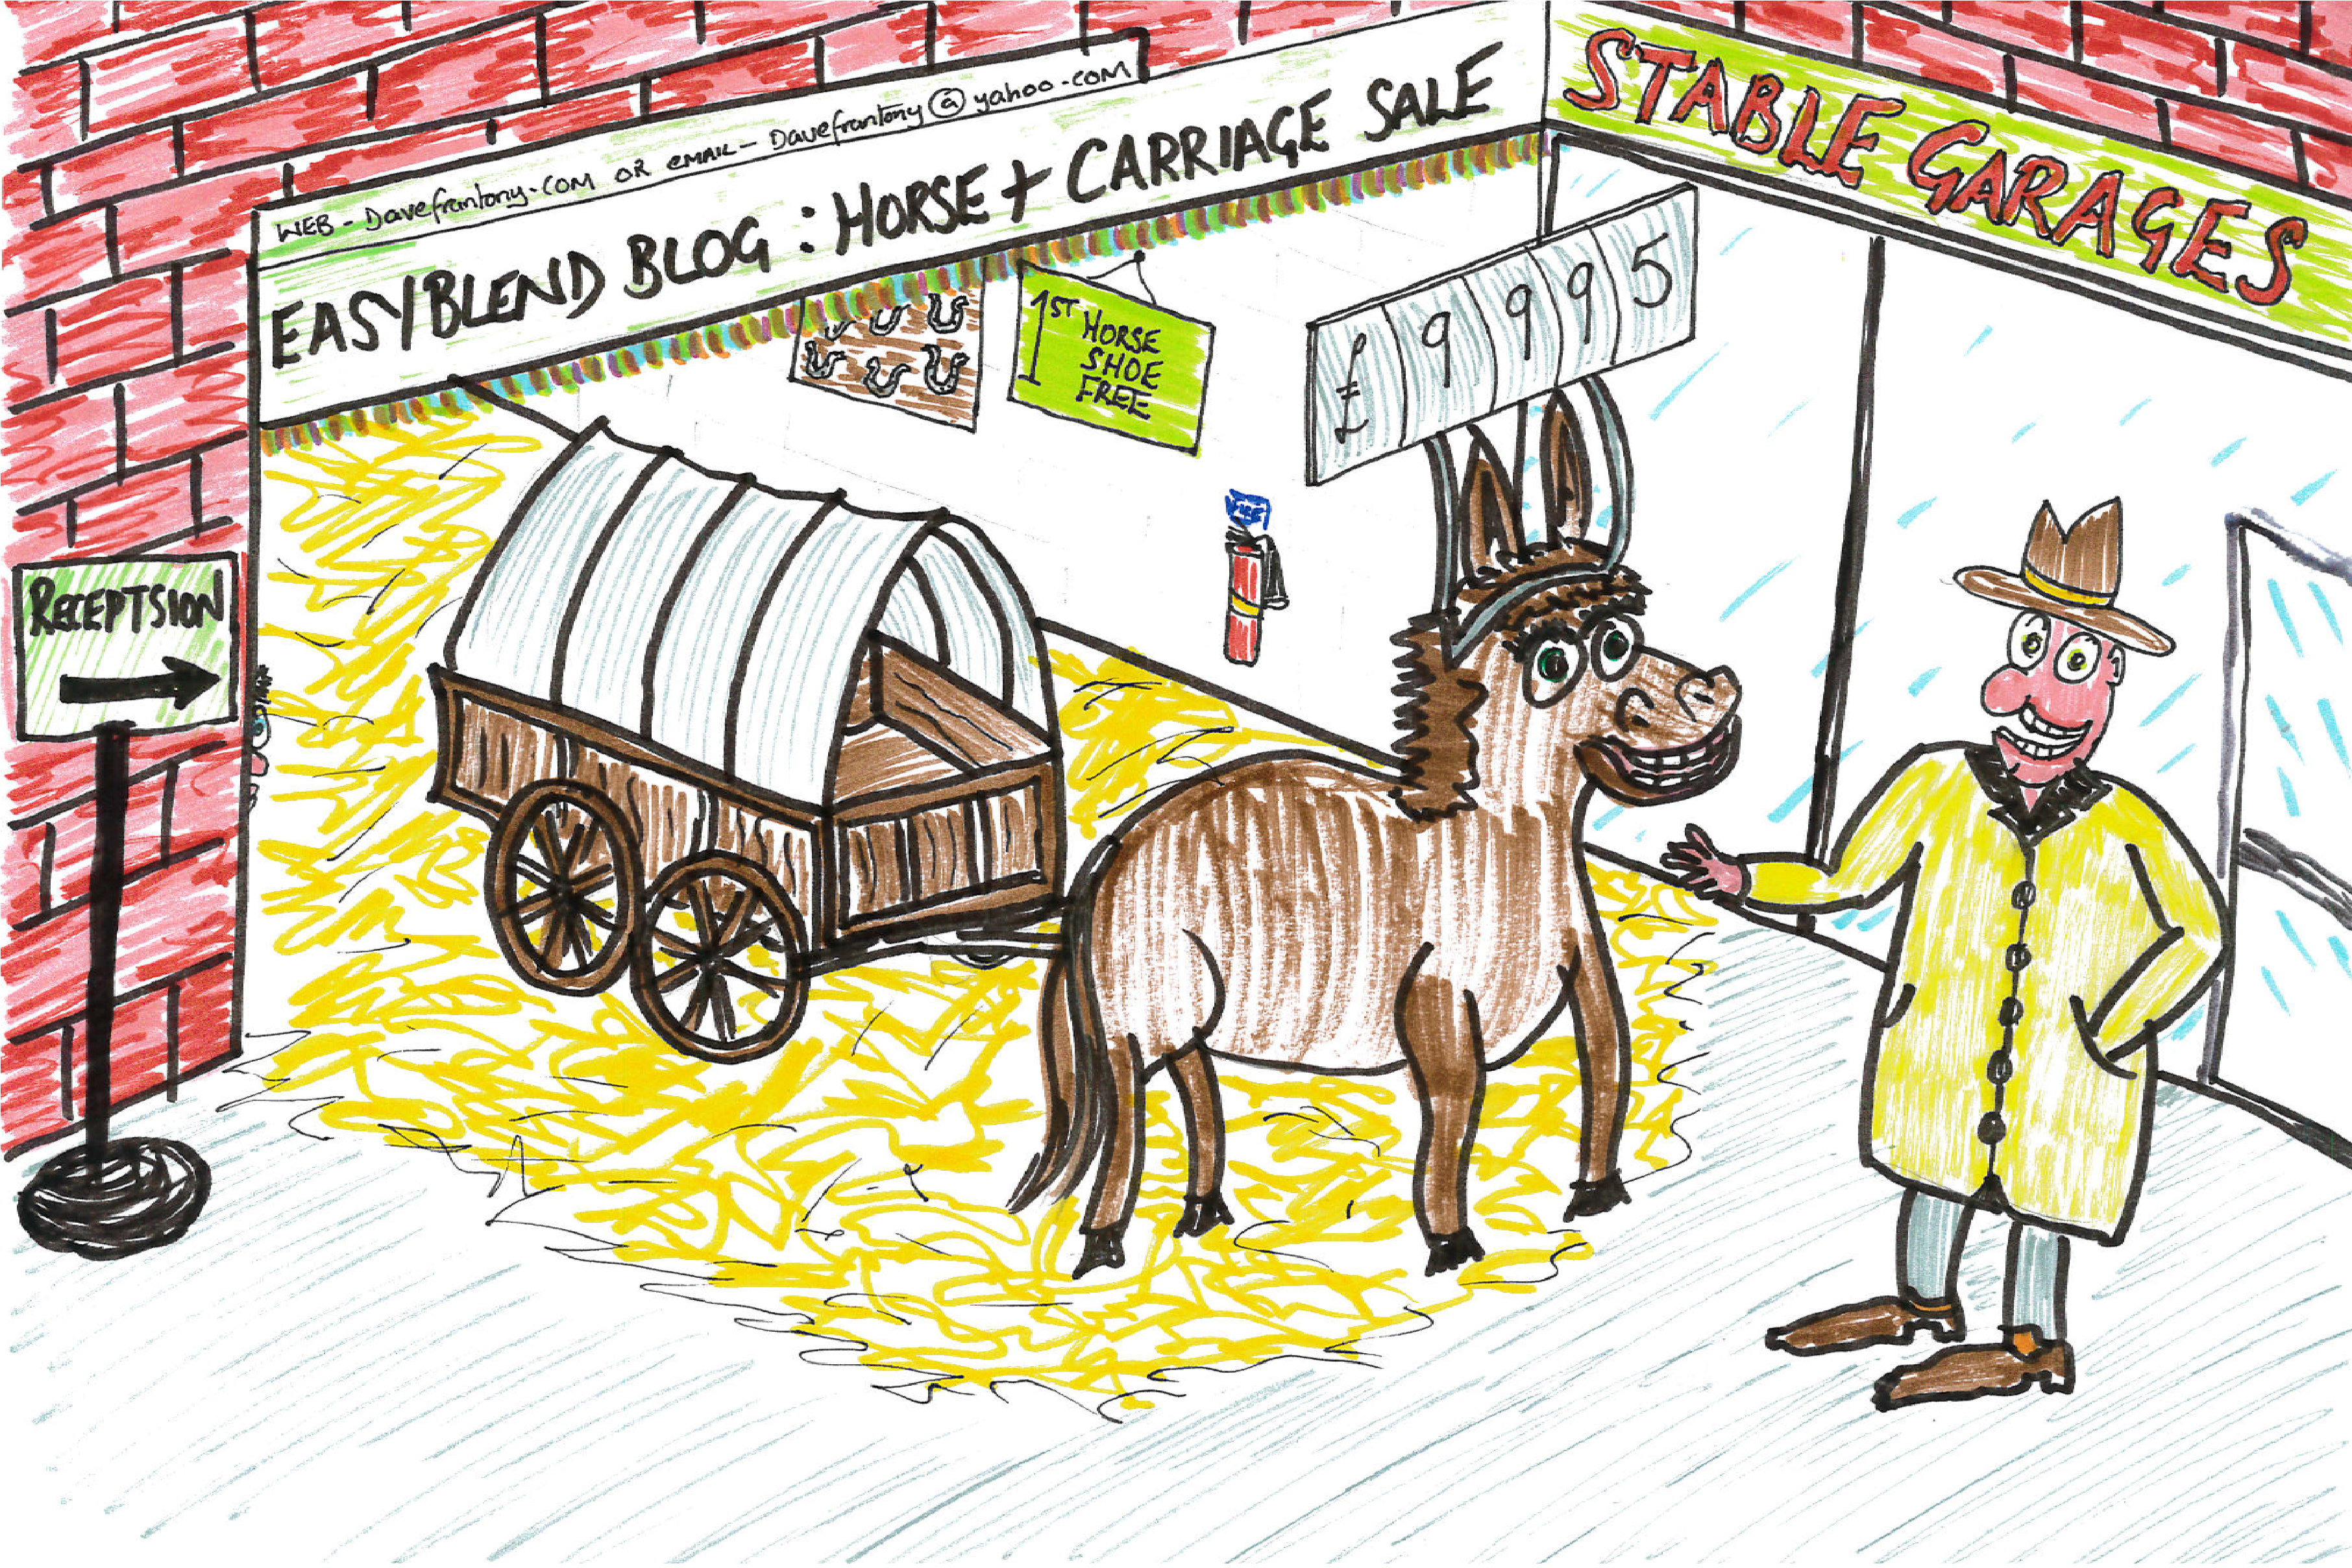 horse-cart-stable